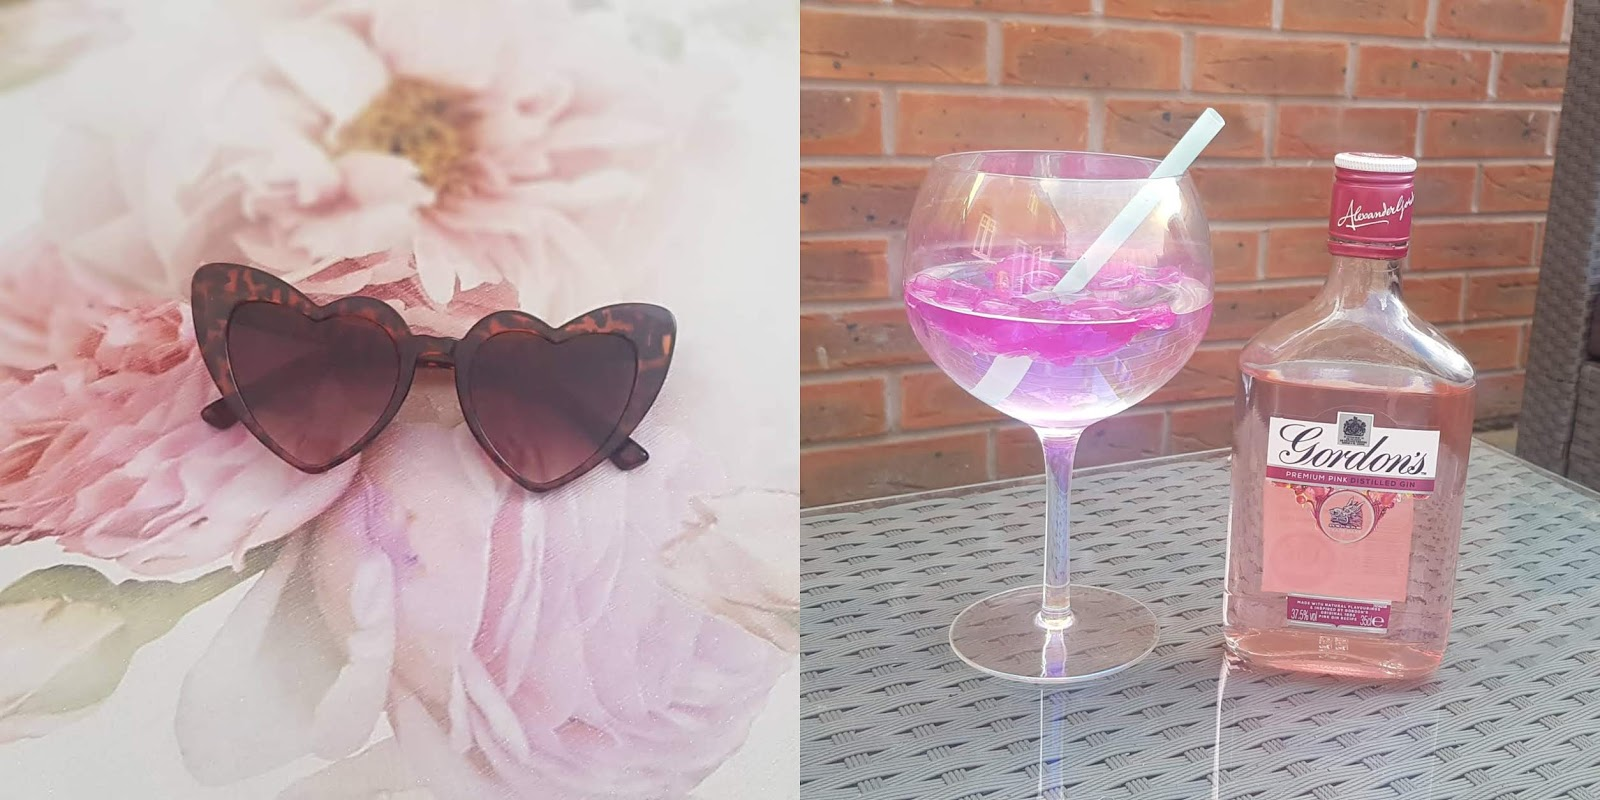 Monthly Favourites #8 - Sunglasses & Gin